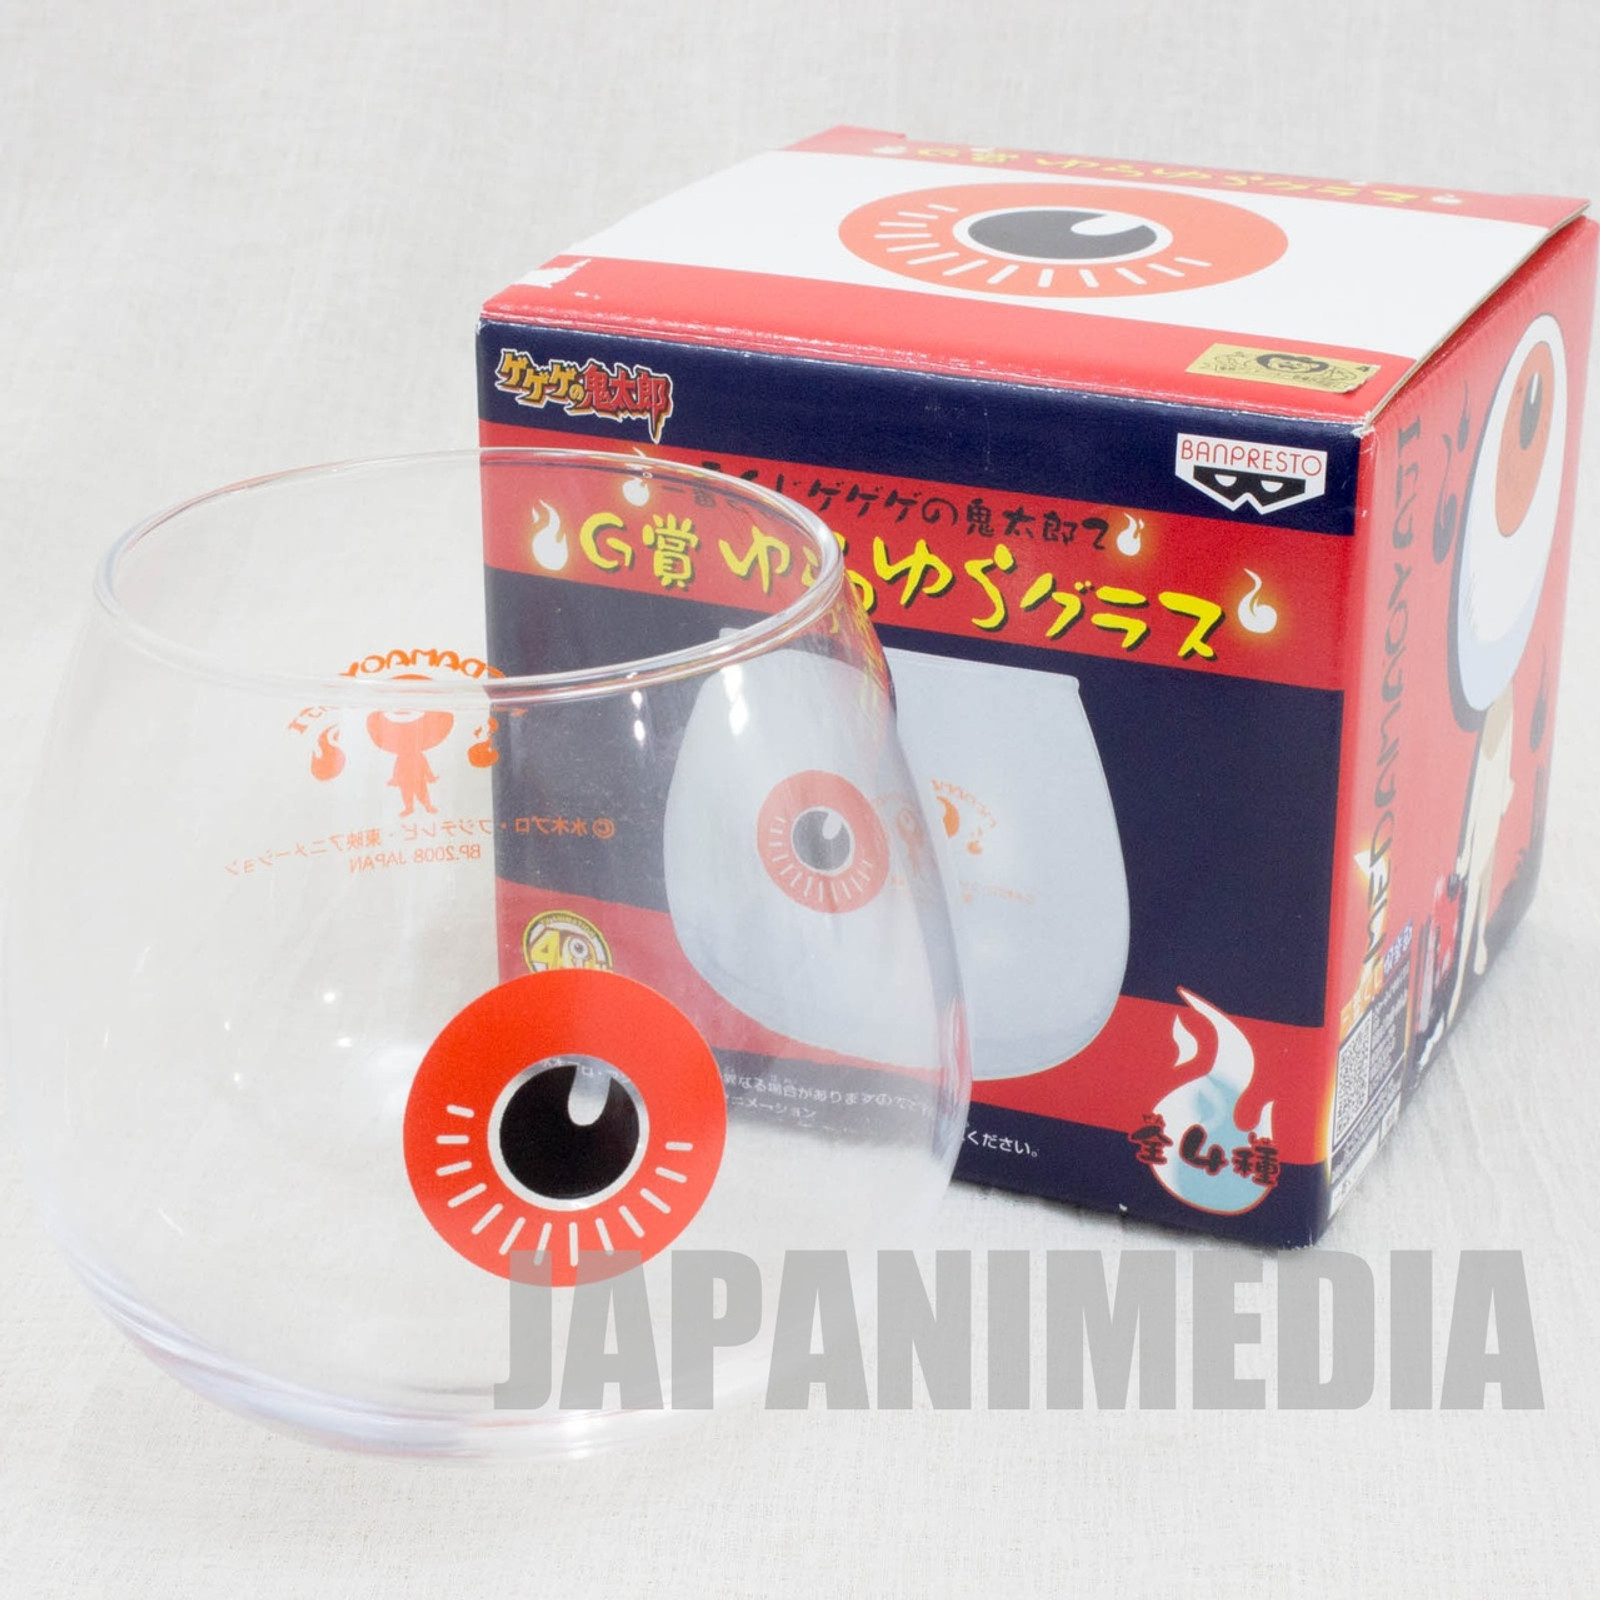 Gegege no Kitaro Medama Oyaji Yura-Yura Swing Glass JAPAN ANIME